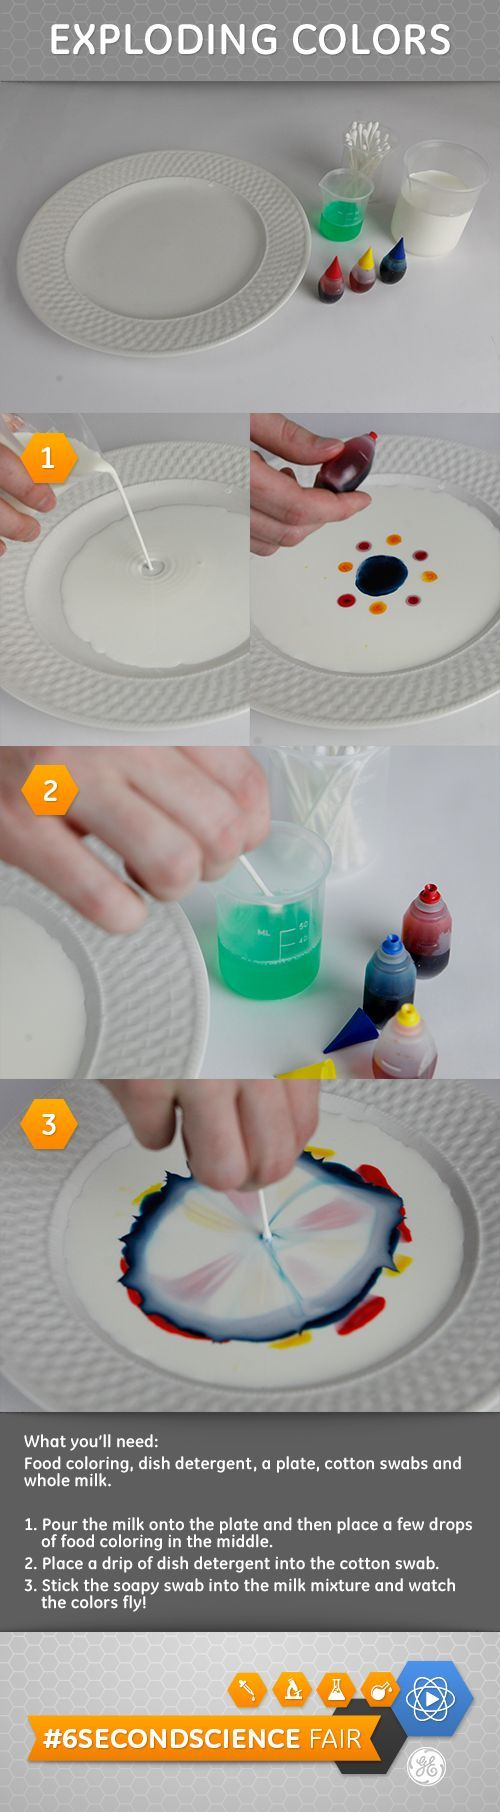 What happens when you combine milk, food coloring, and dish soap? COOL KID SCIENCE!